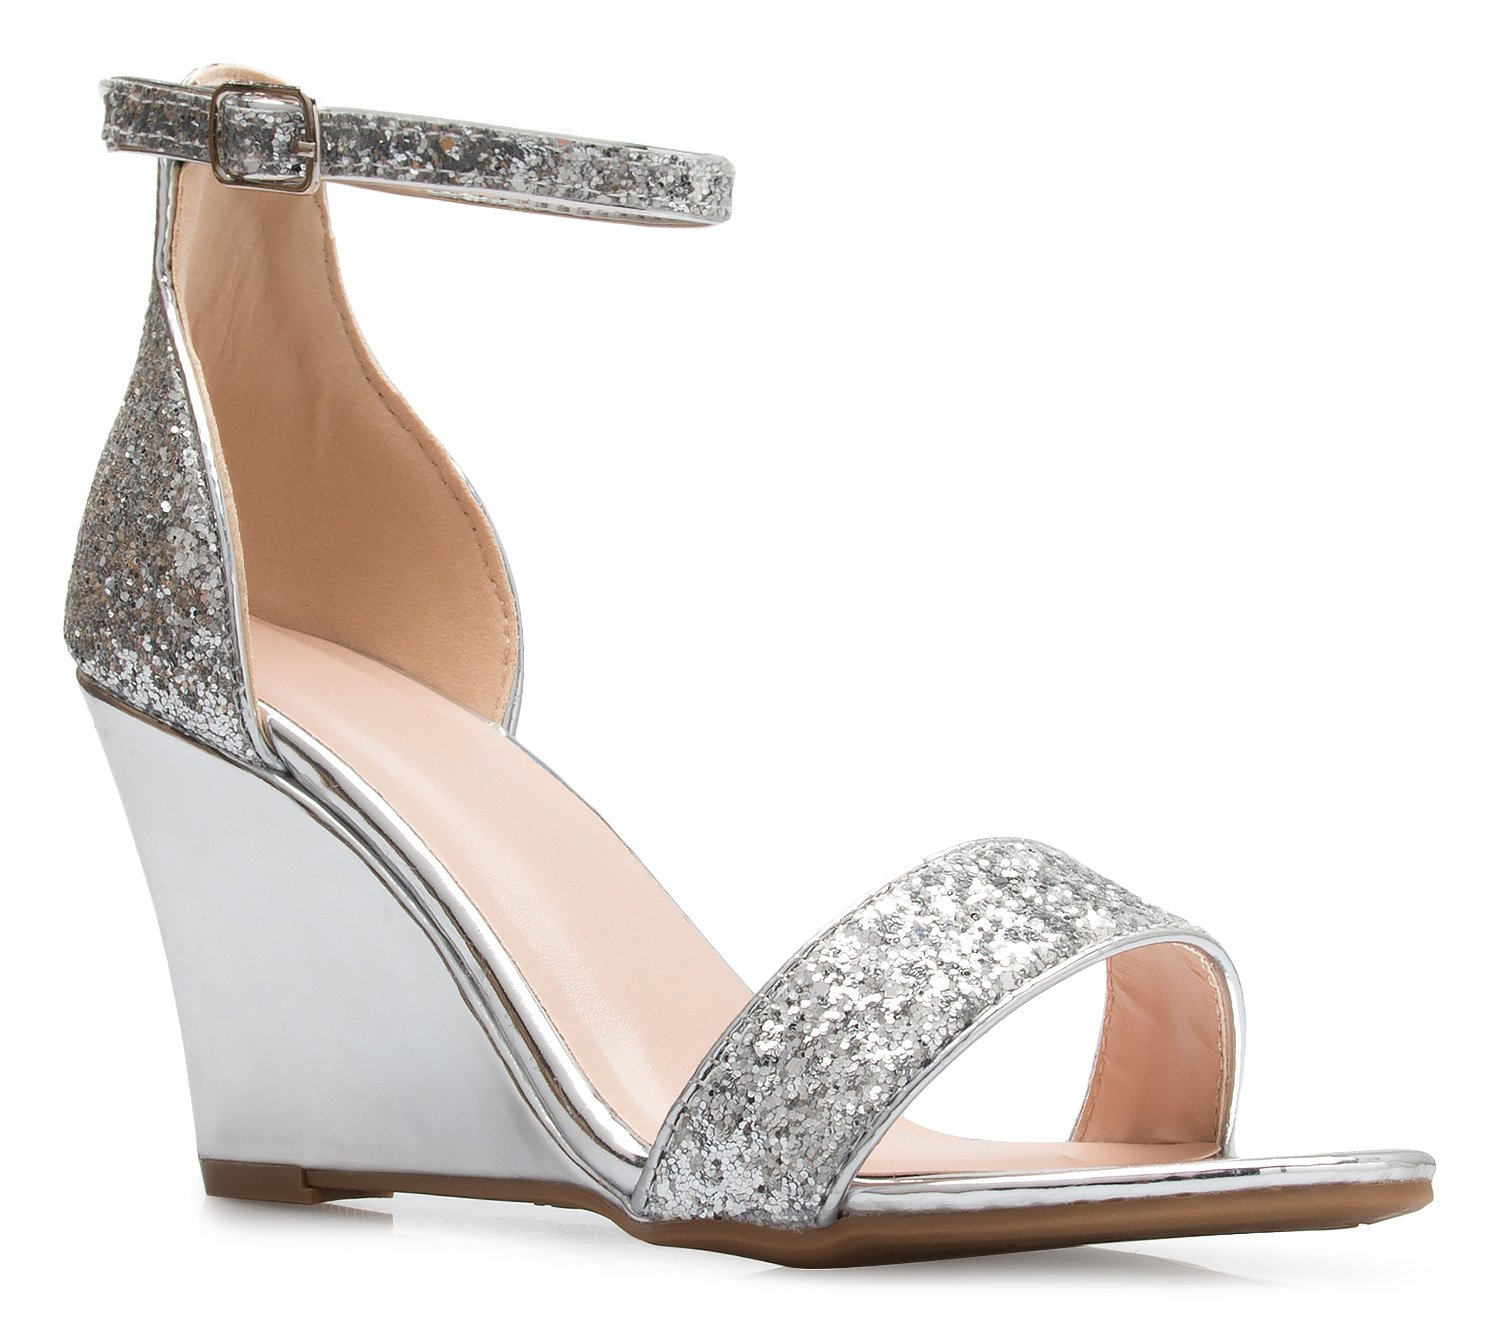 OLIVIA K Womens Ankle Strap Wedge Heel Sandals - Adorable Glitter Open Toe - Casual, Classic, Comportable